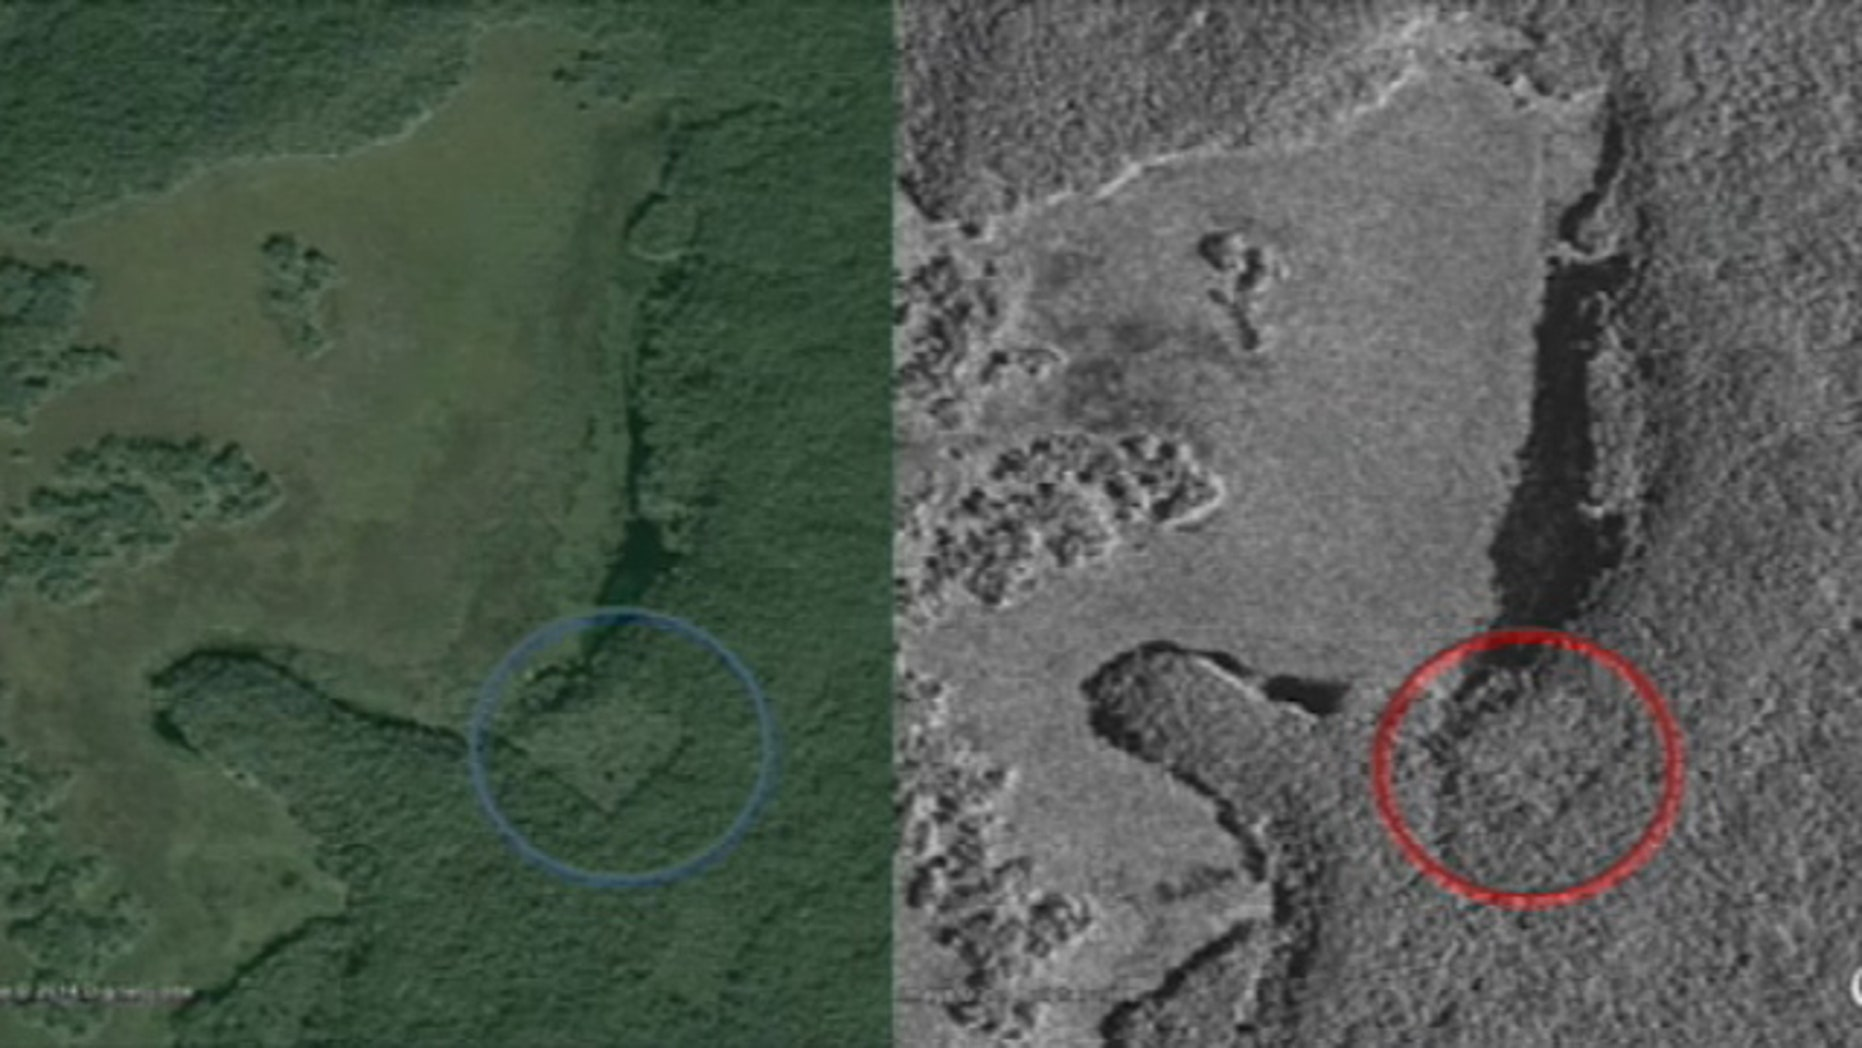 These undated images show possible man-made structures in Mexico's Yucatan Peninsula that may be a lost Mayan city